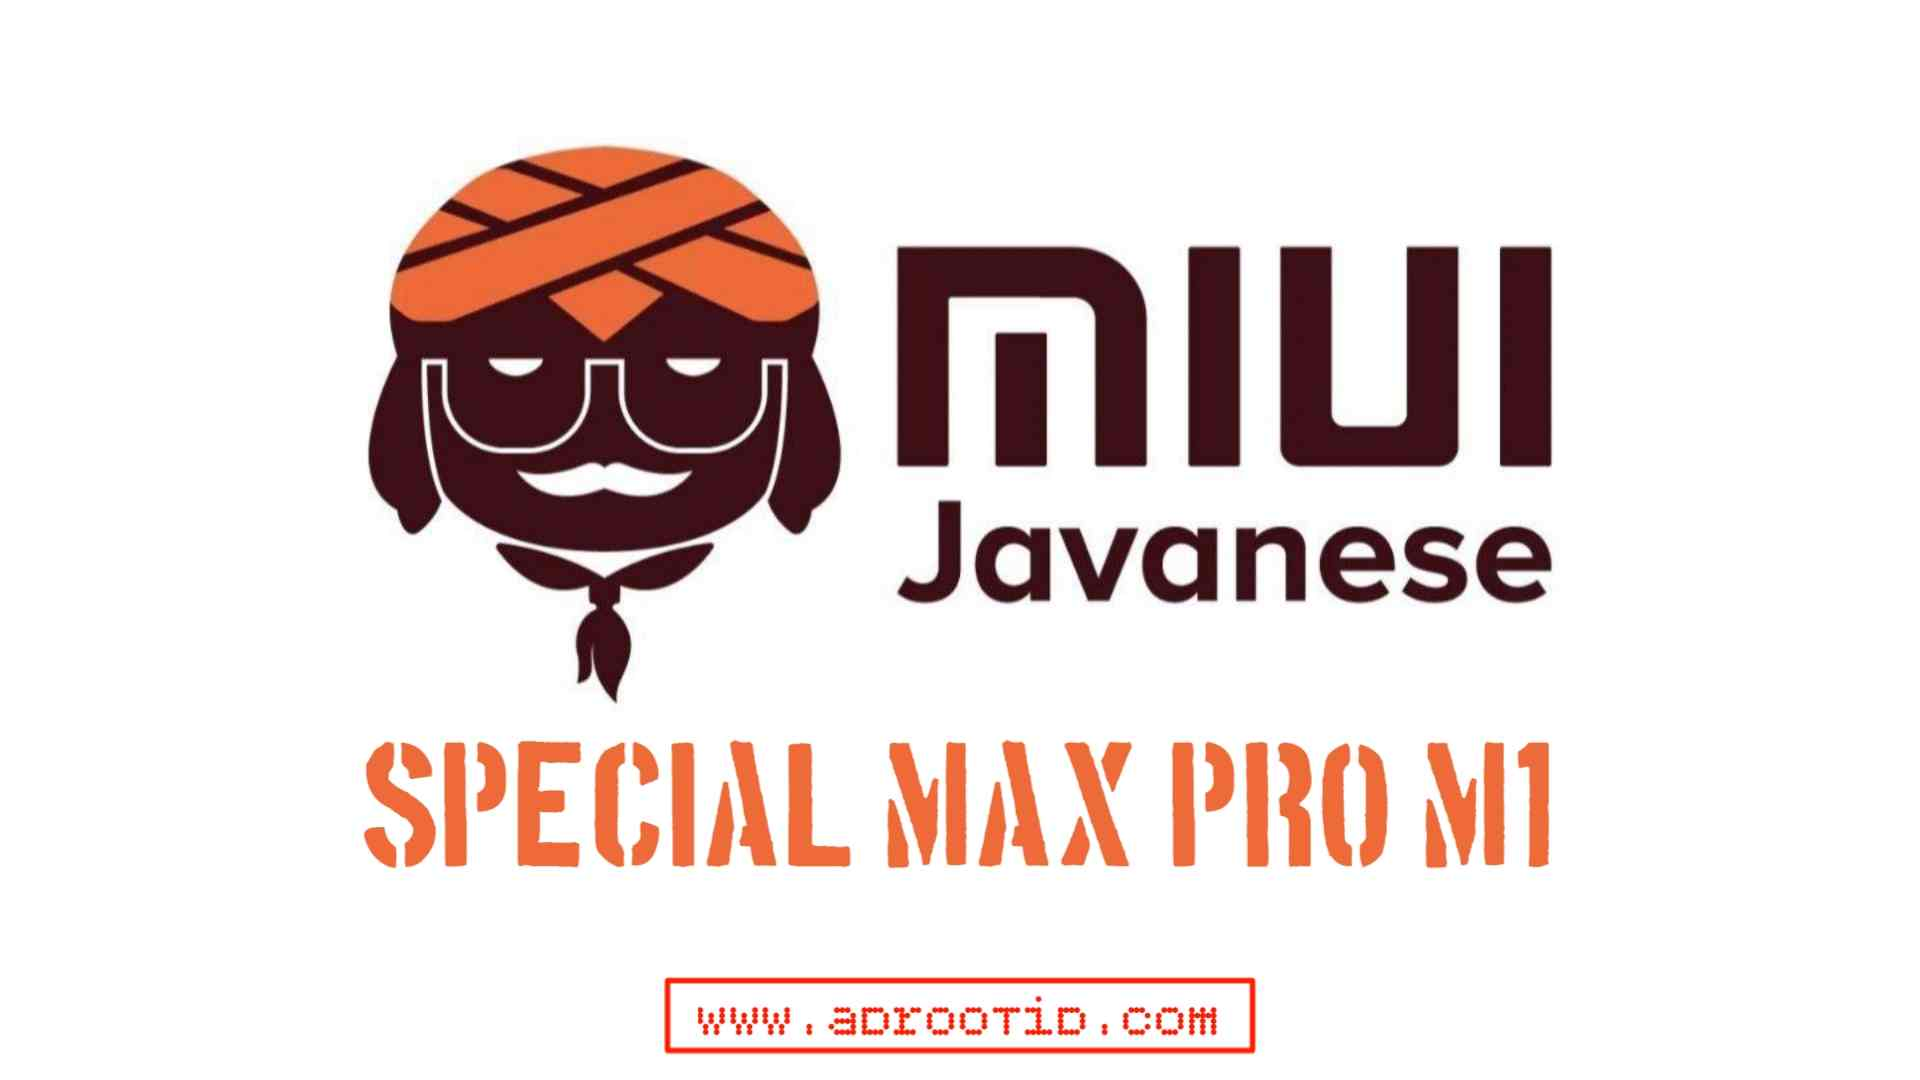 MIUI 12.1 Javanese for Max Pro M1 | X00TD